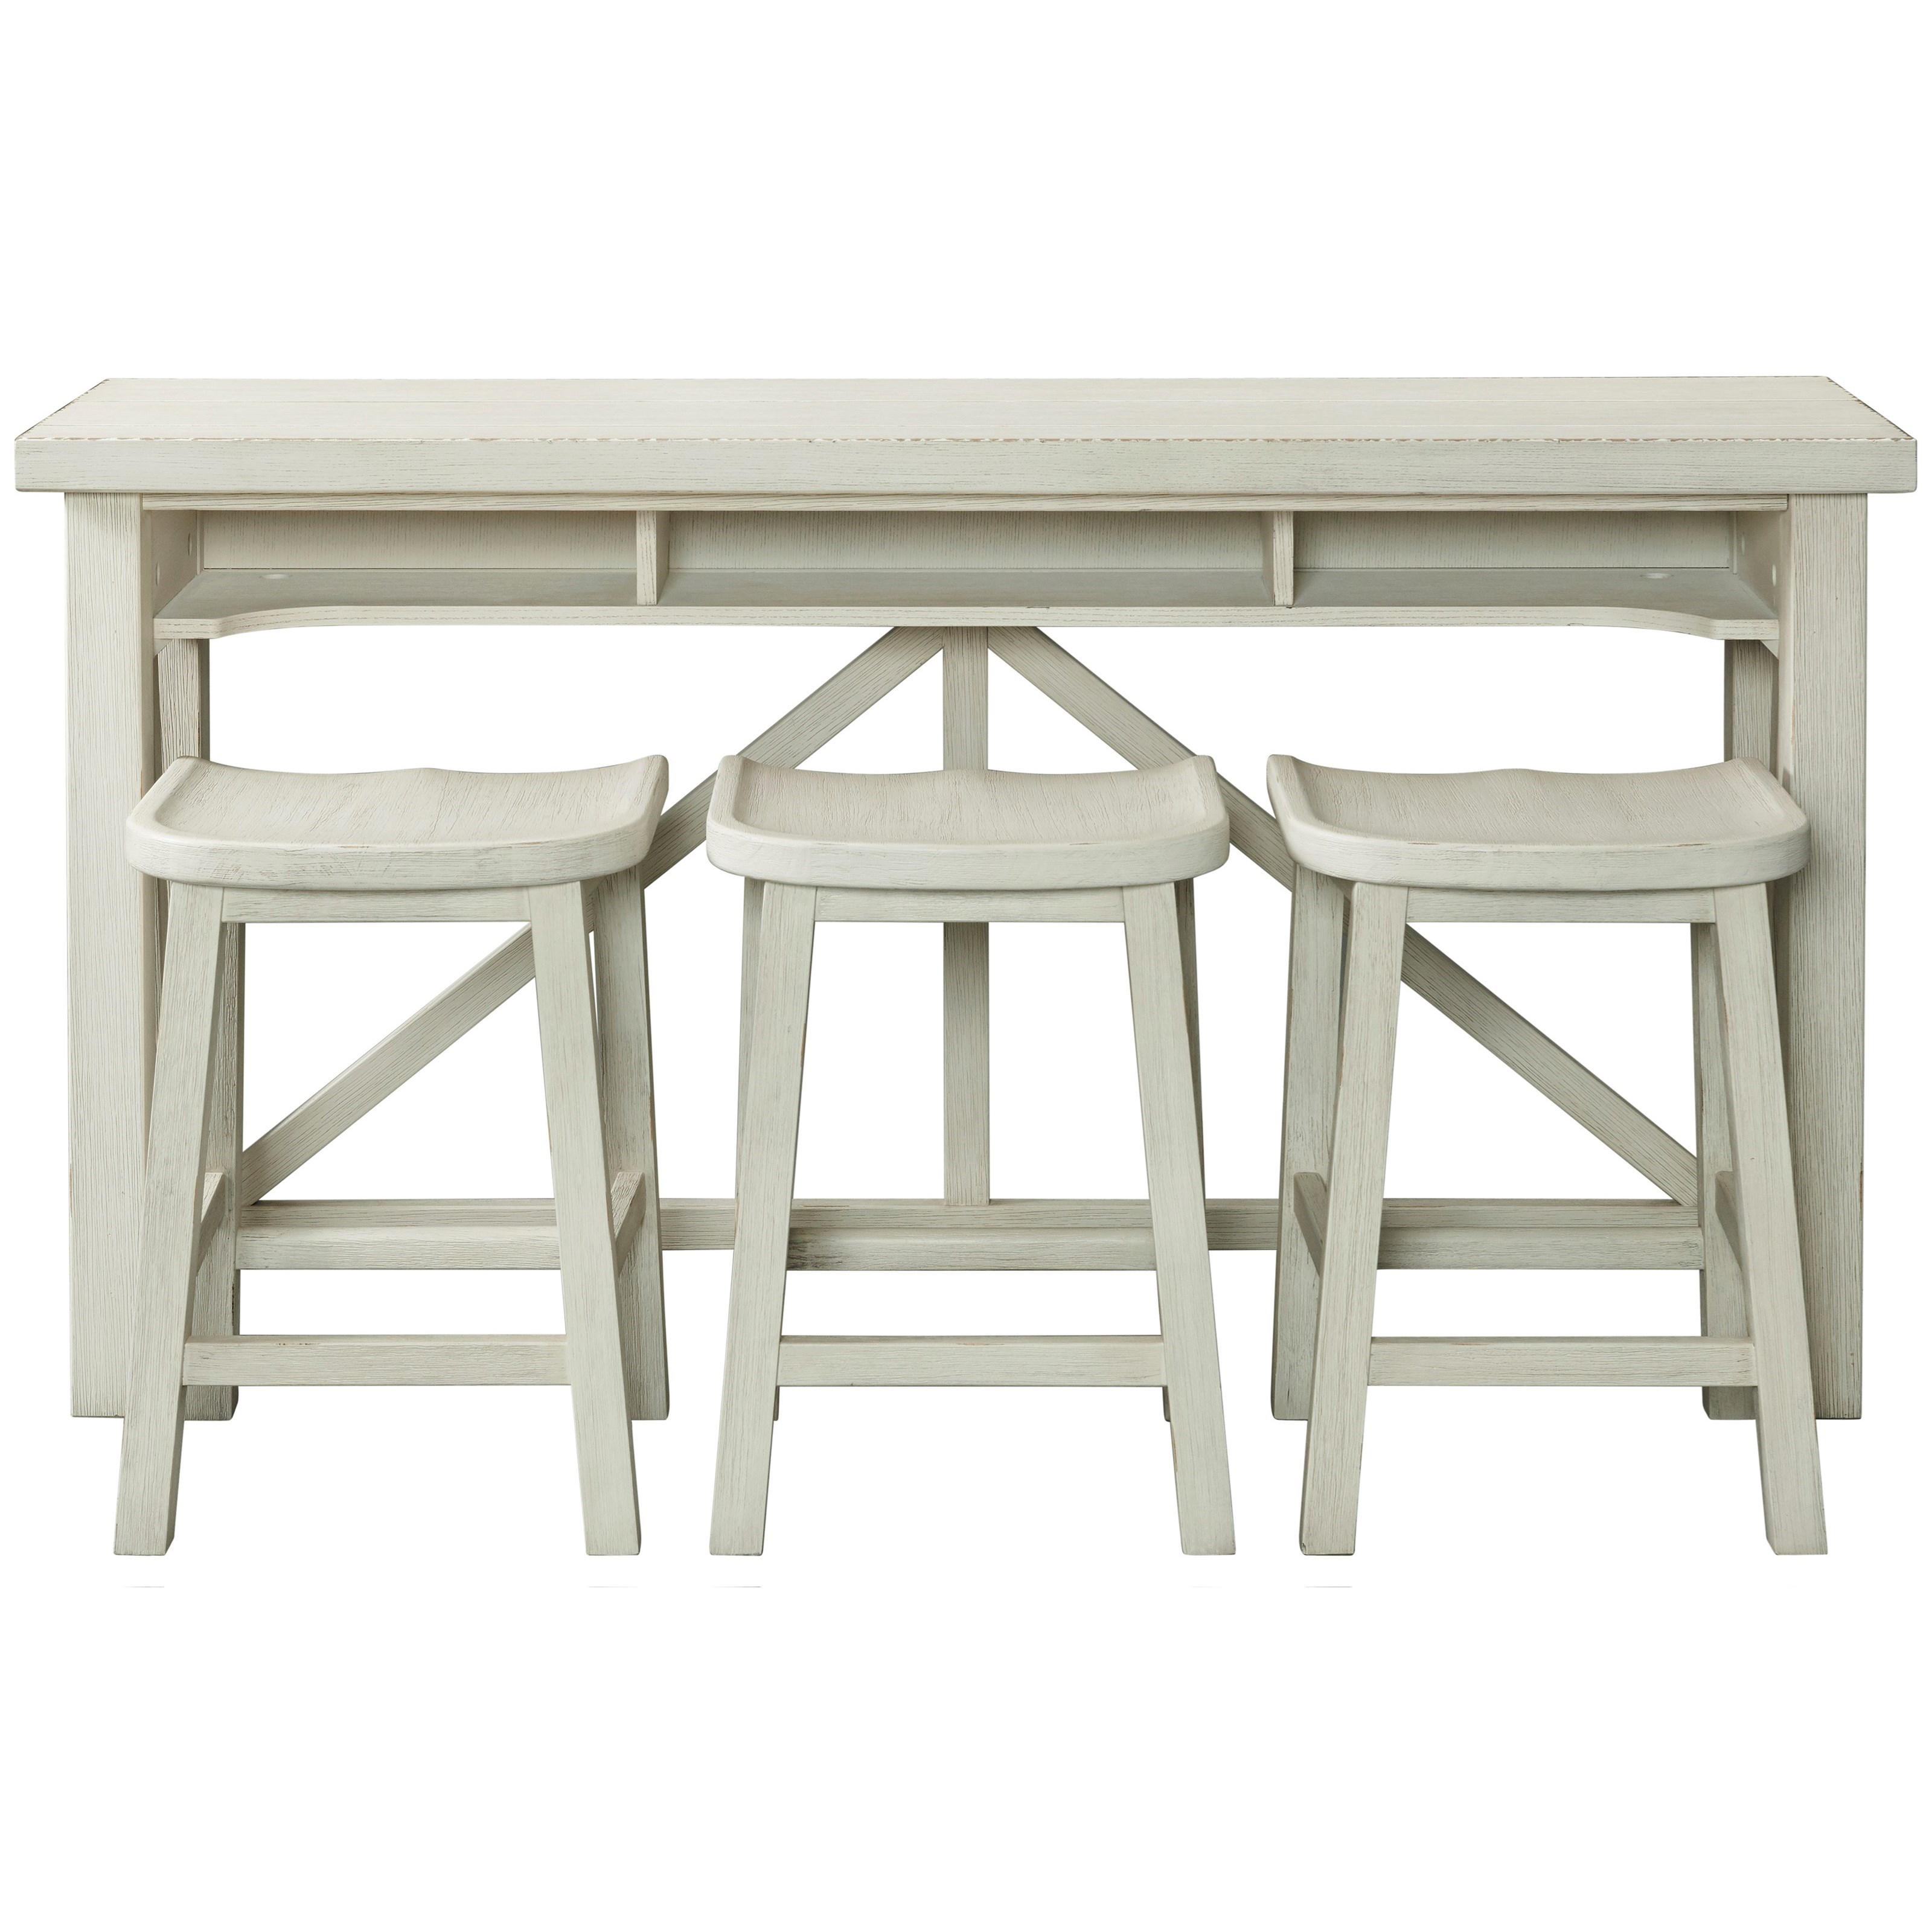 Aberdeen Sofa Table with Stools by Riverside Furniture at Reid's Furniture